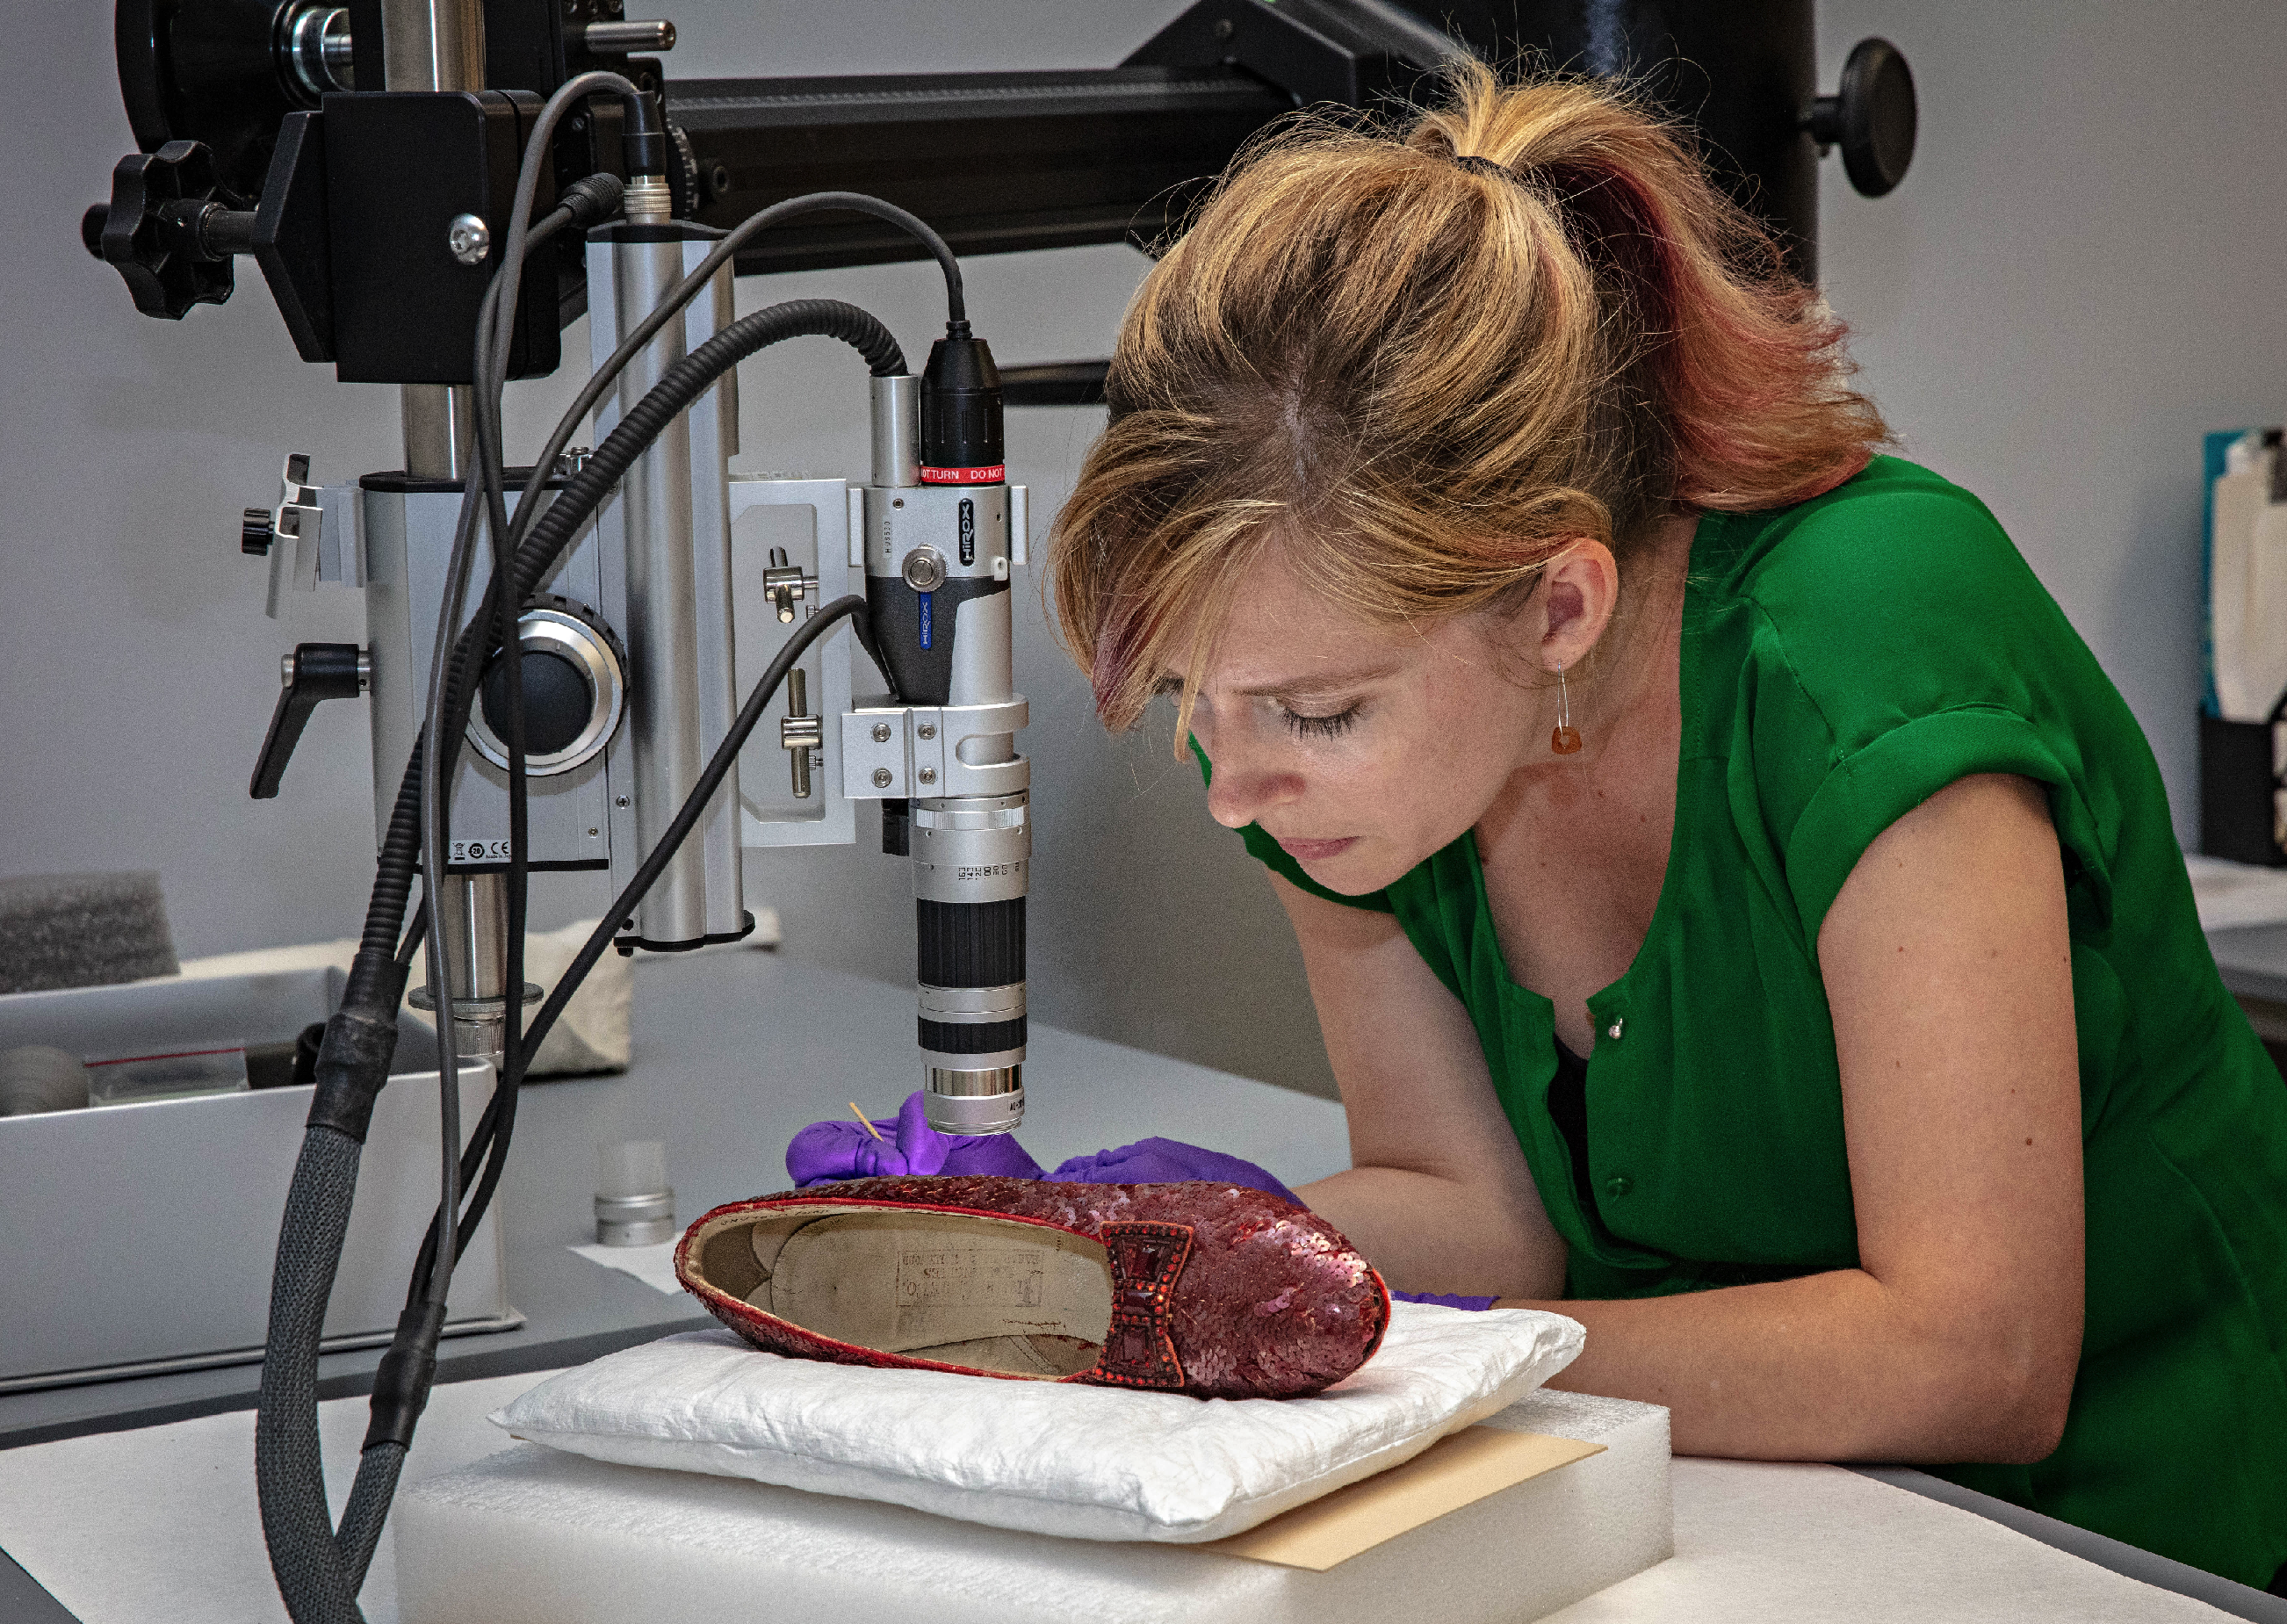 A woman wearing a green shirt looks at a sequin-covered red shoe, using a stick-like instrument to examine in. Beside her, a microscope.